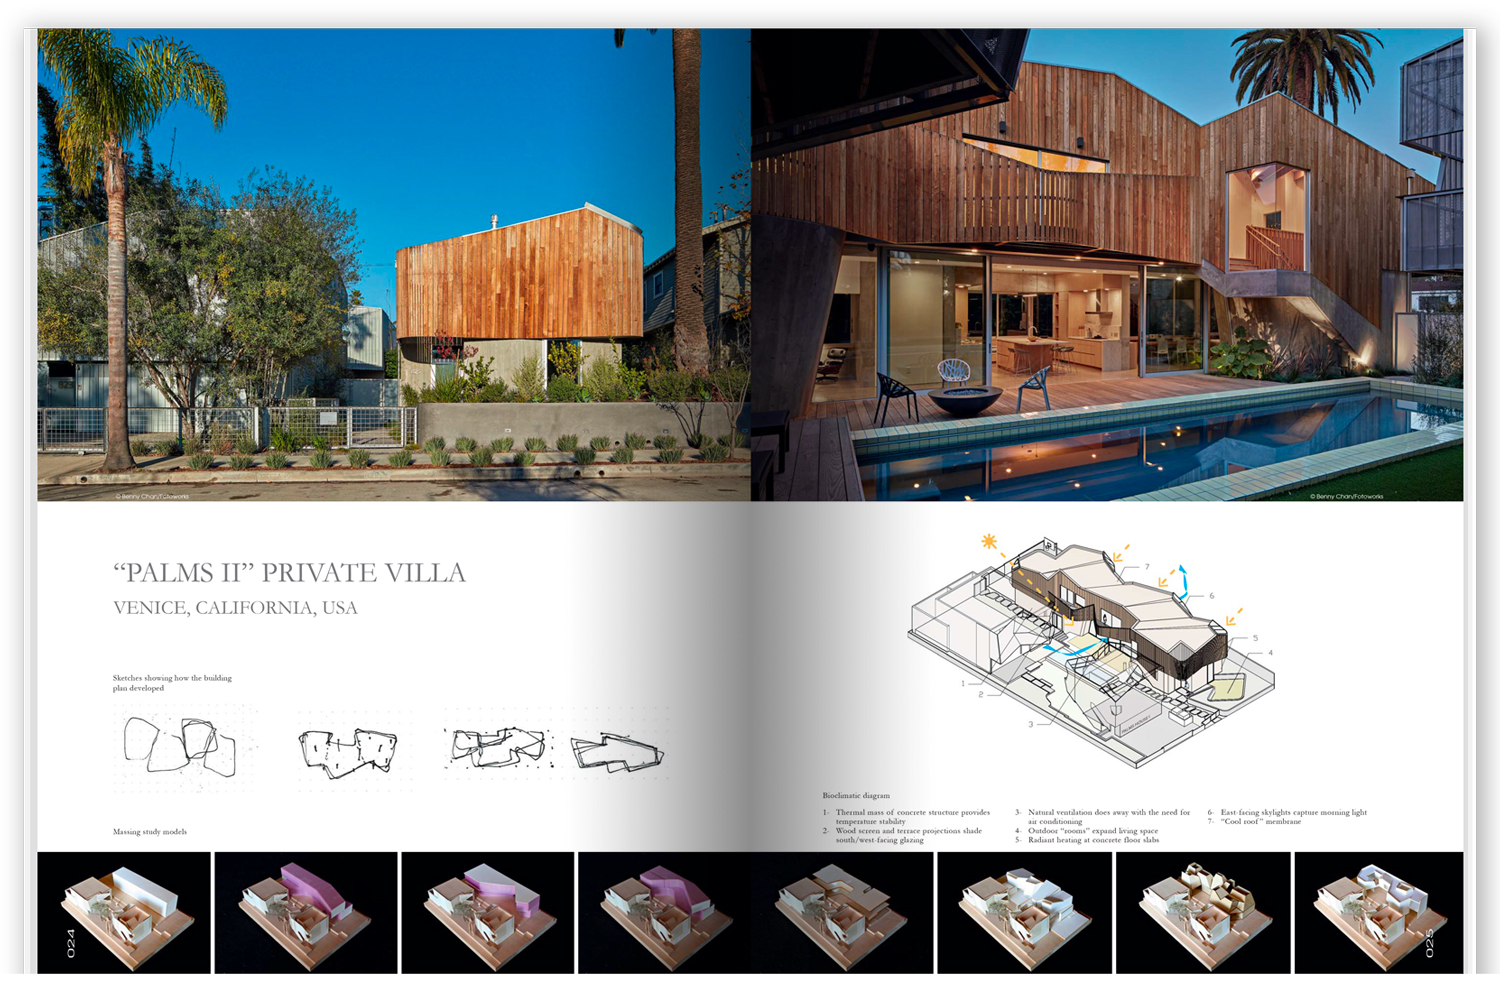 The latest issue of THE PLAN now out. Discover the featured projects.